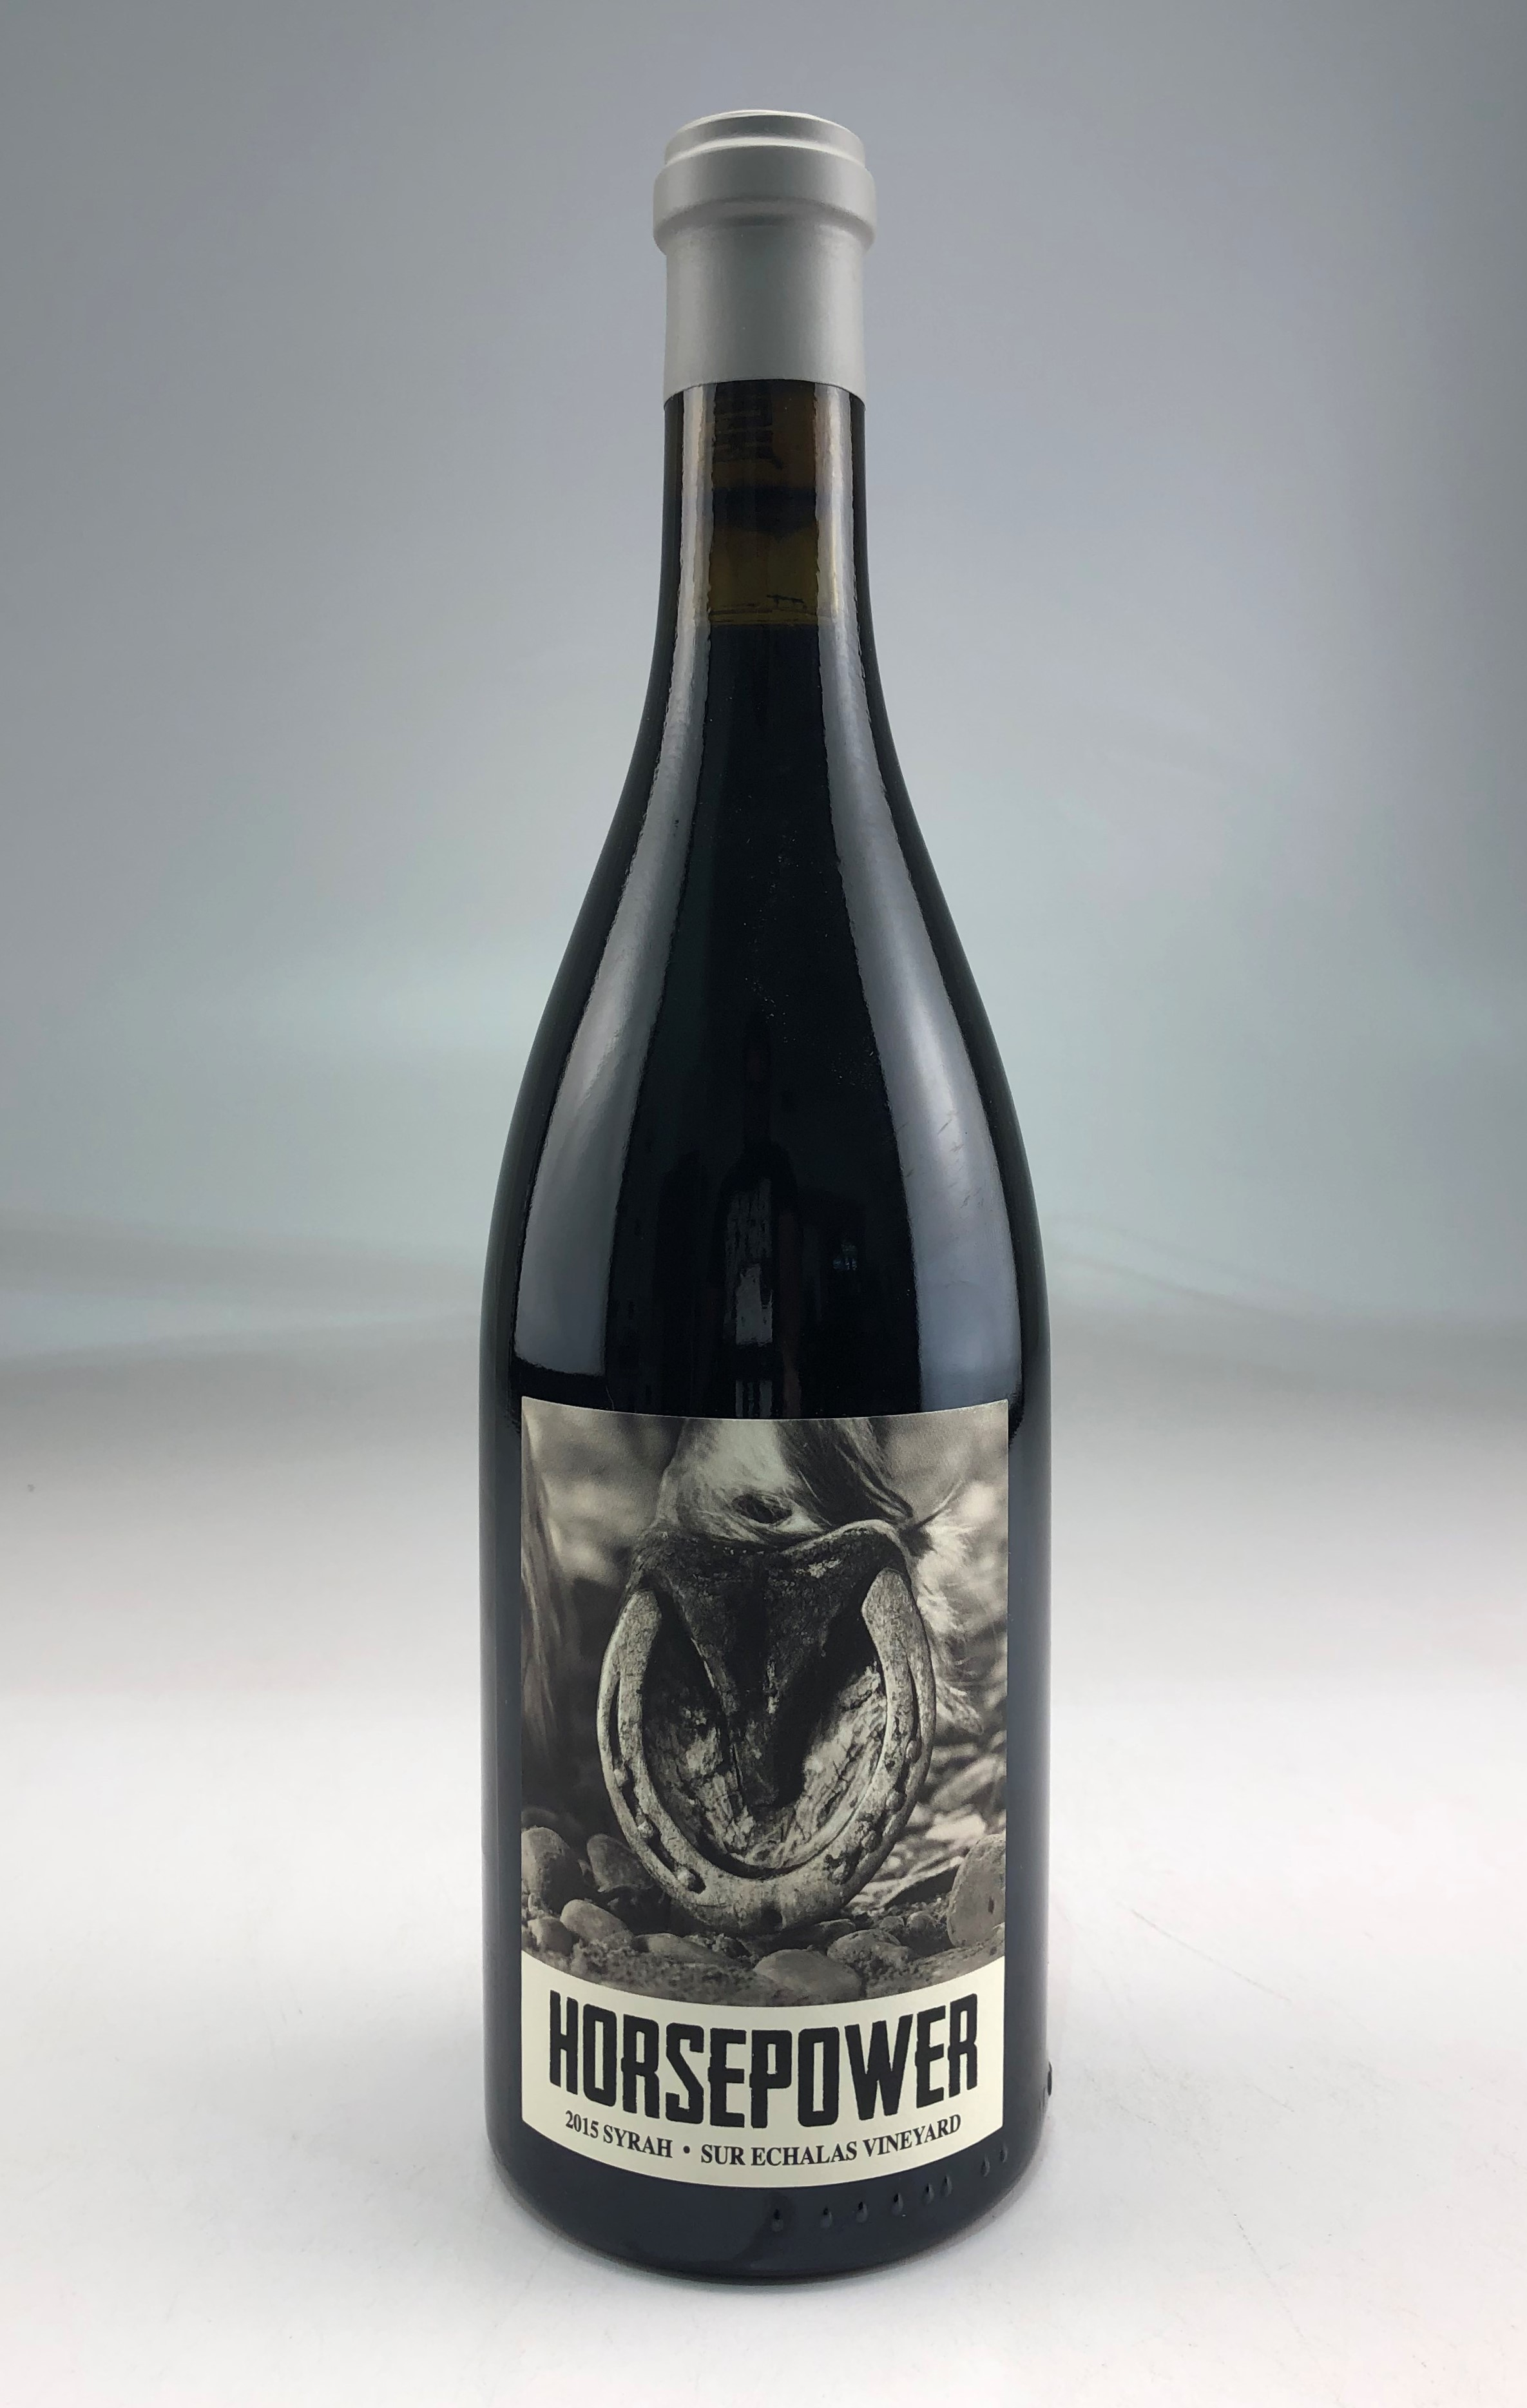 2015 Horsepower Syrah Sur Echalas Vineyard, Walla Walla Valley RP--98